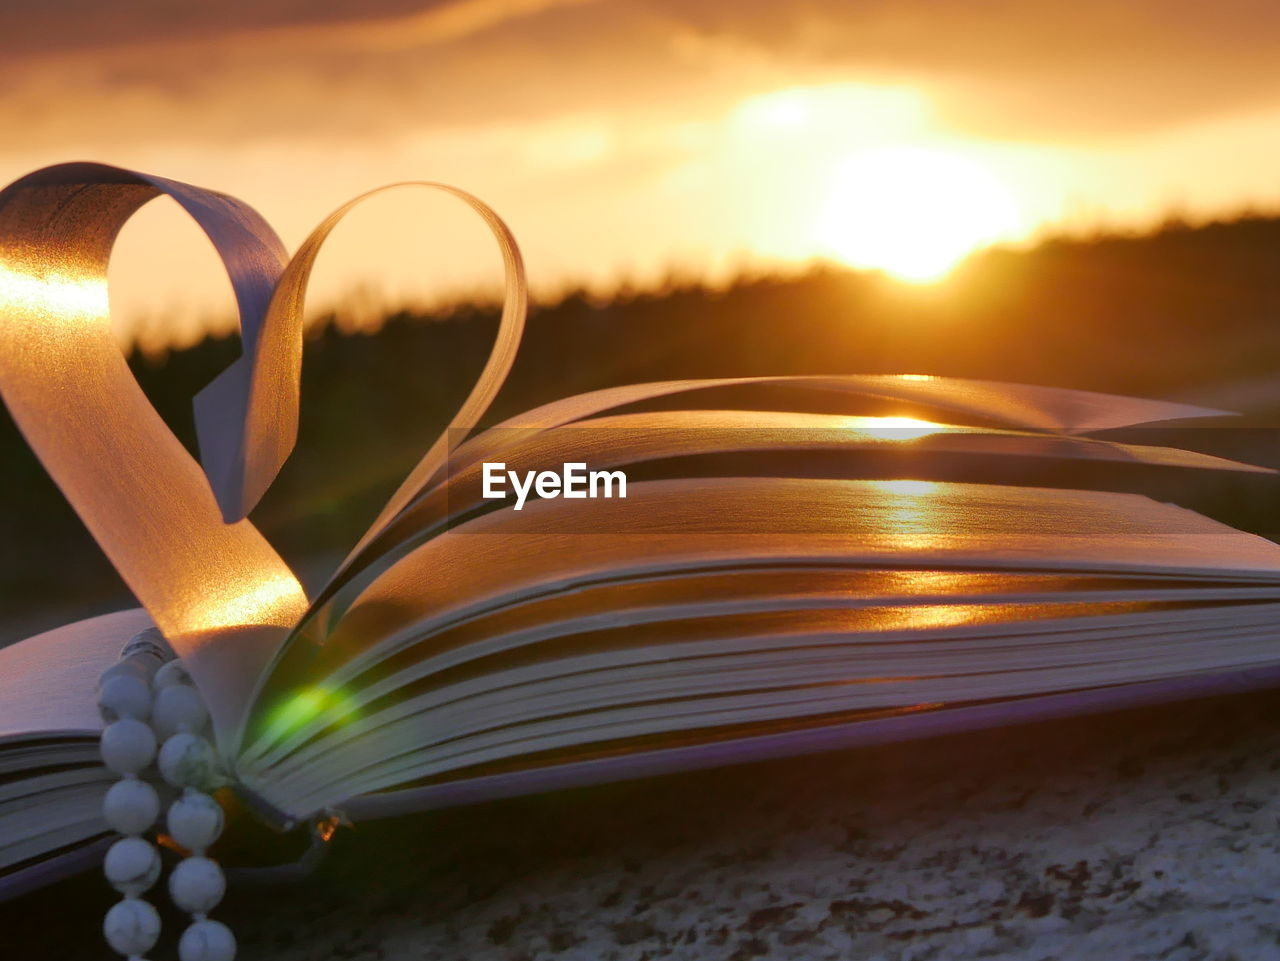 Necklace with heart shape pages of book during sunset